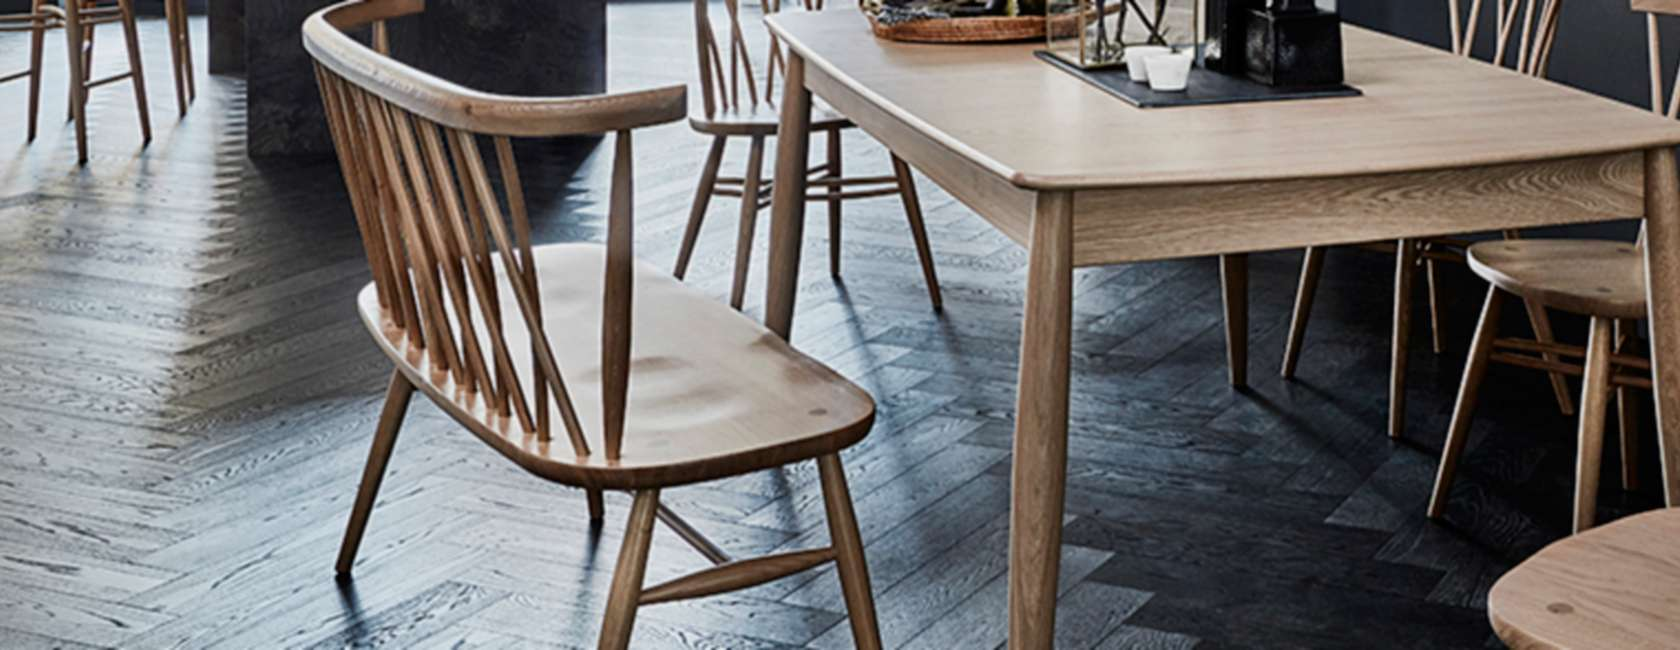 Ercol For John Lewis Shalstone Living Dining Furniture Range At Partners